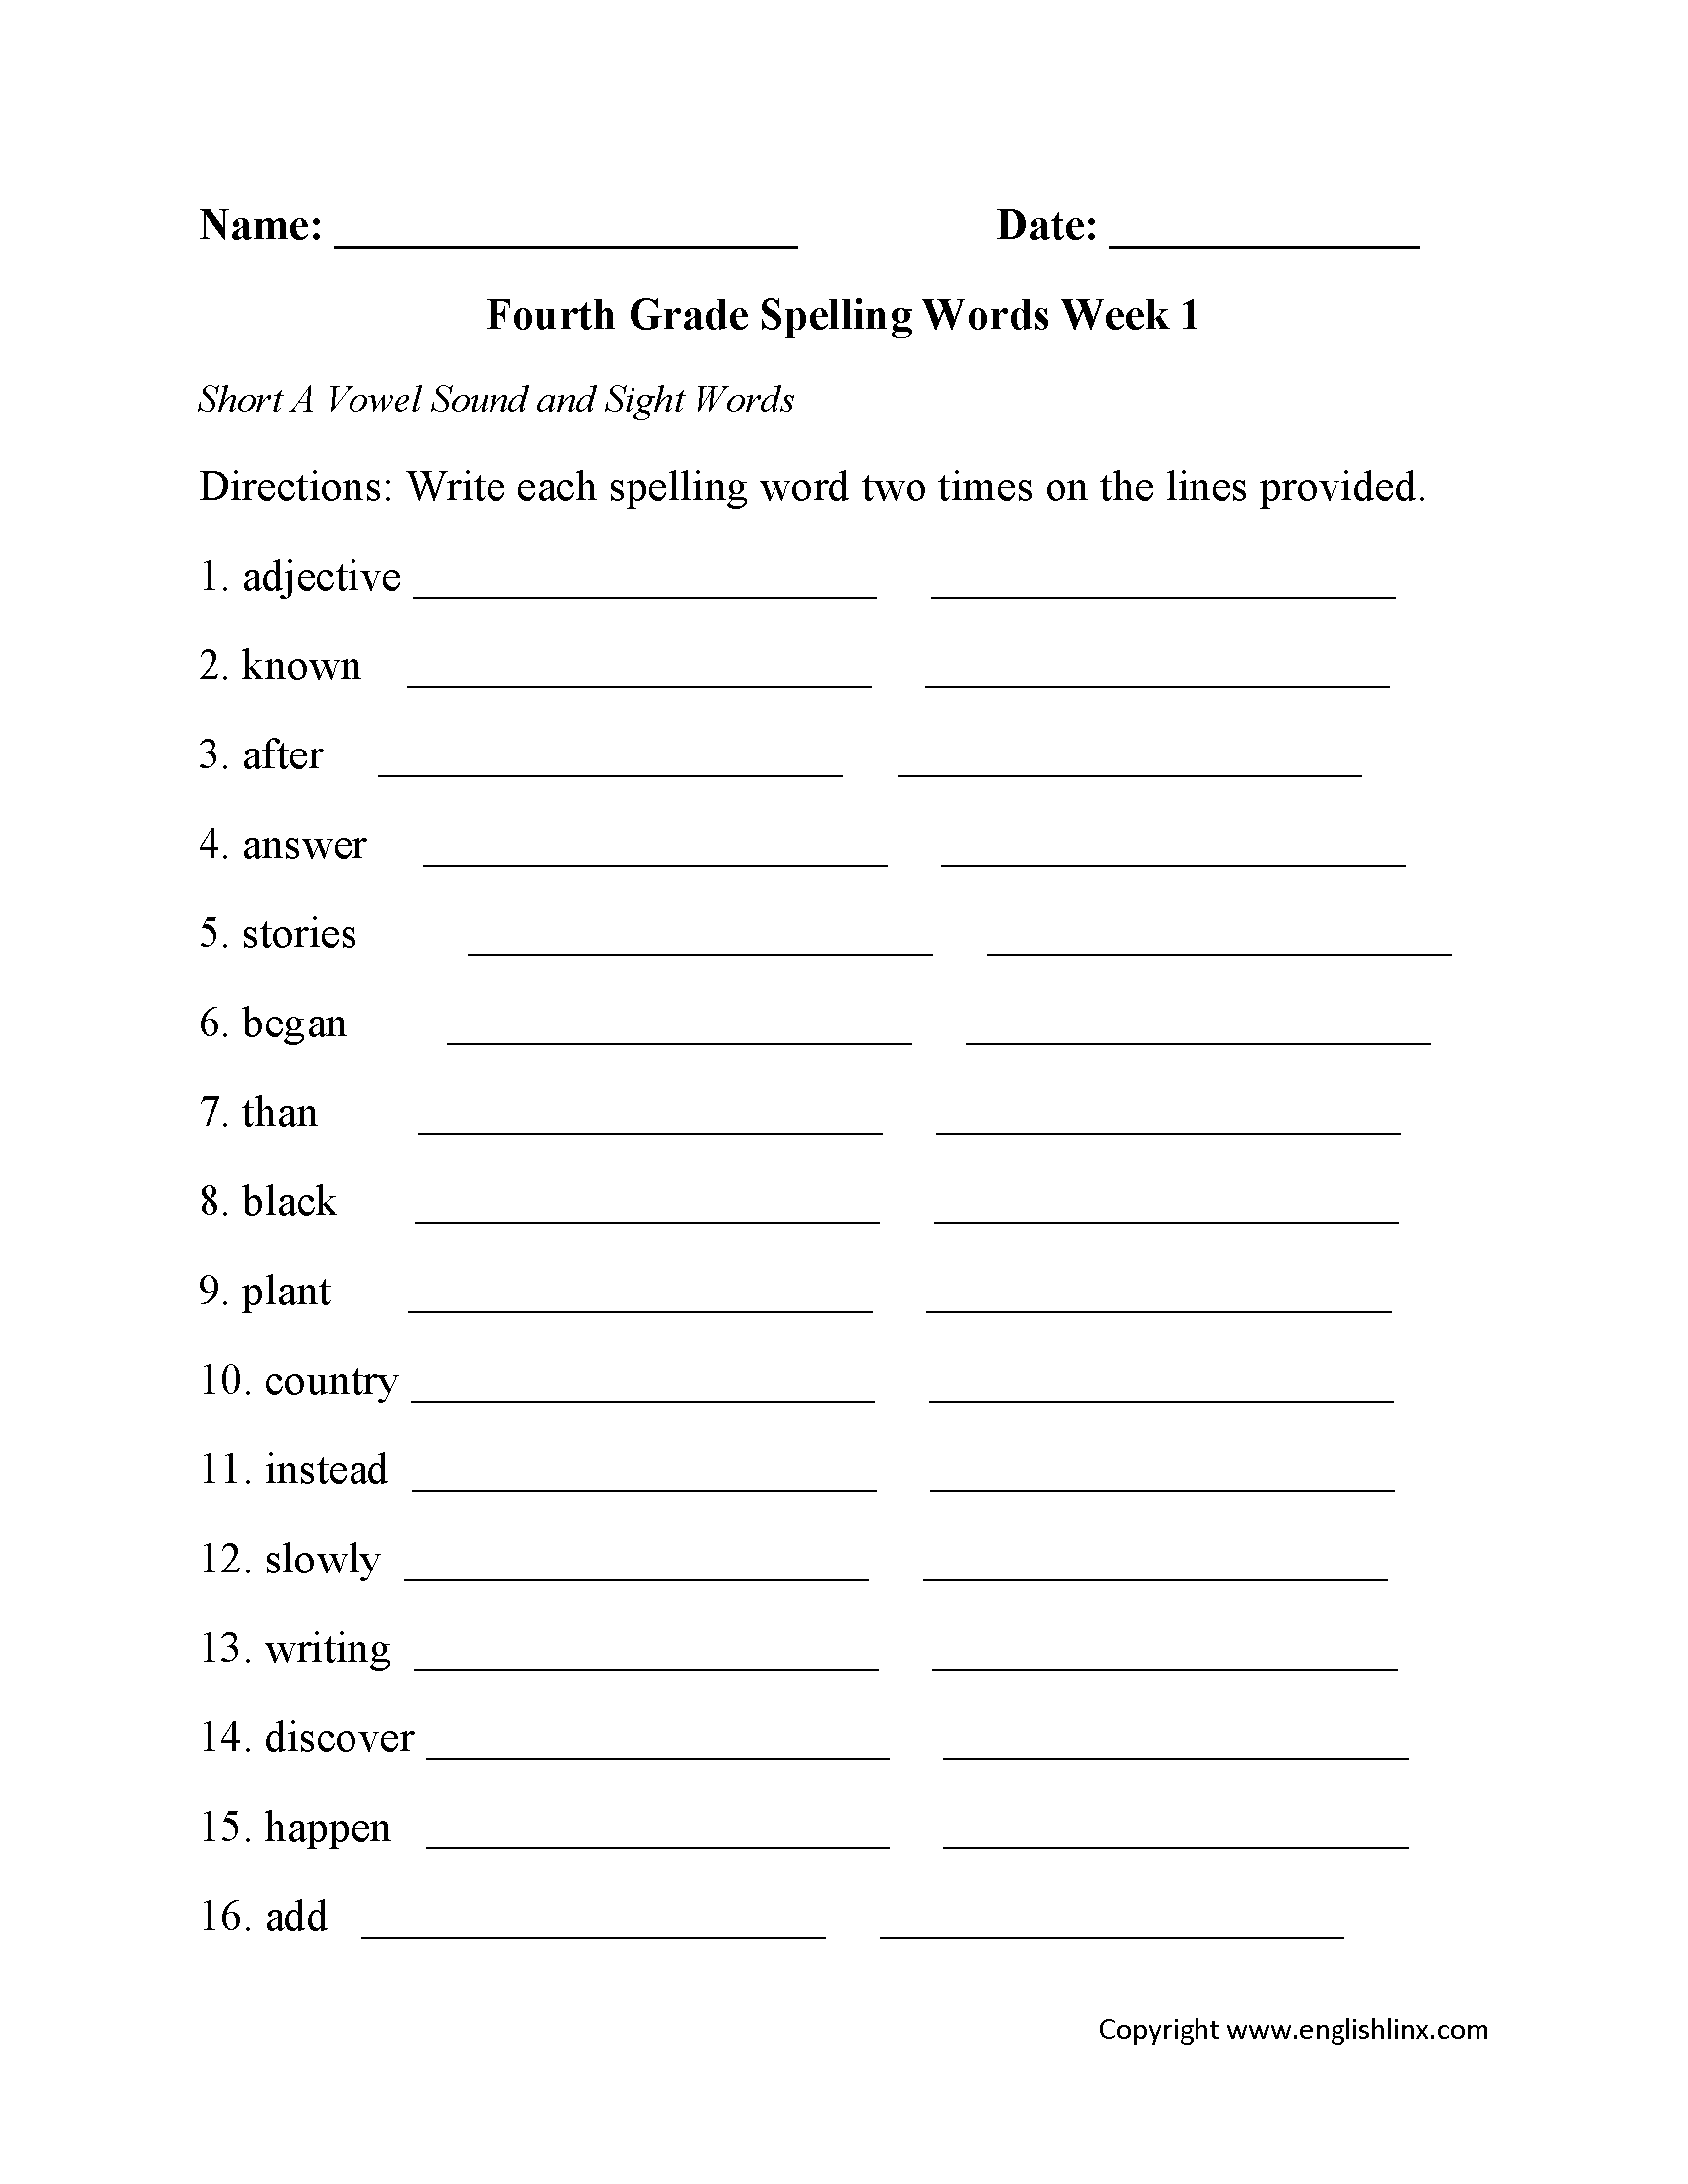 Spelling Worksheets – Worksheets for 4th Grade